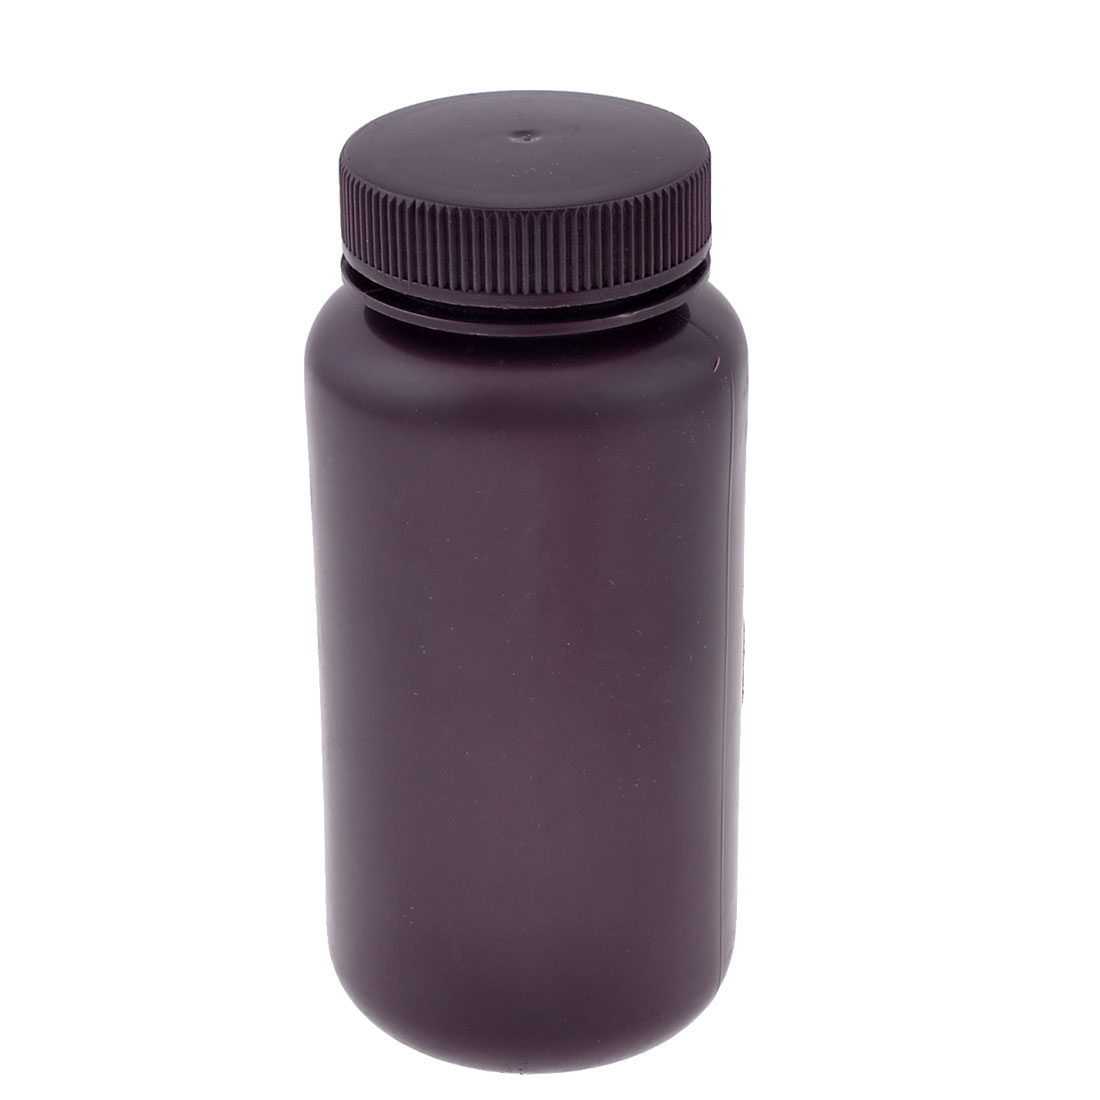 500ml Brown Plastic Cylinder Shaped Chemical Reagent Bottle